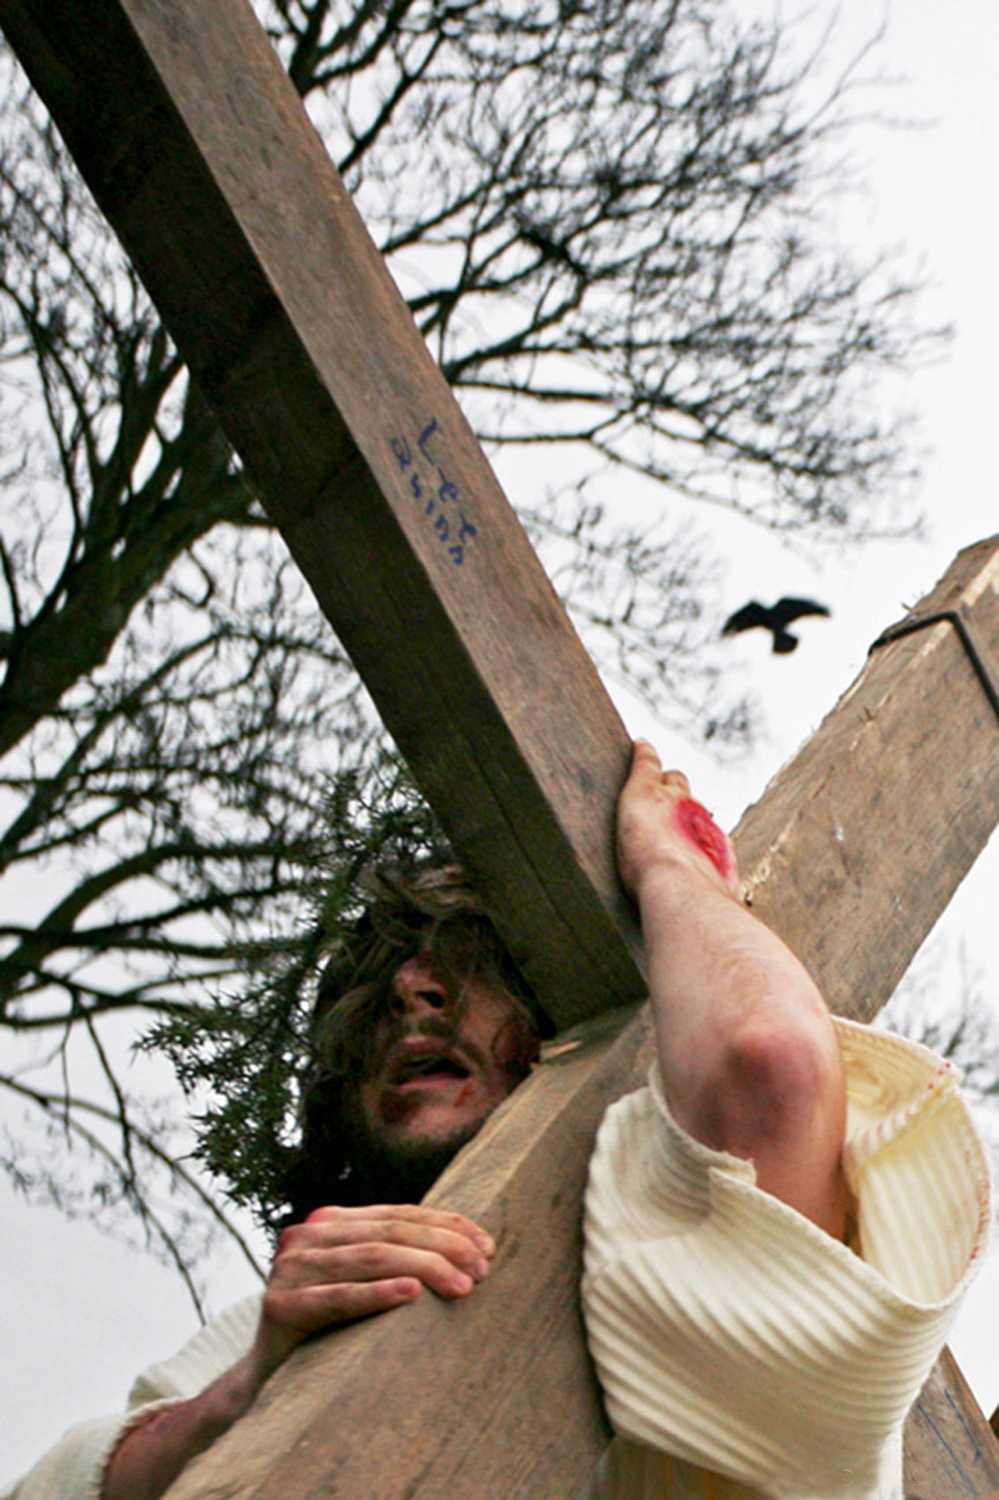 A documentary photograph of the monks of Moyross performing the Passion of the Christ in Limerick, Ireland